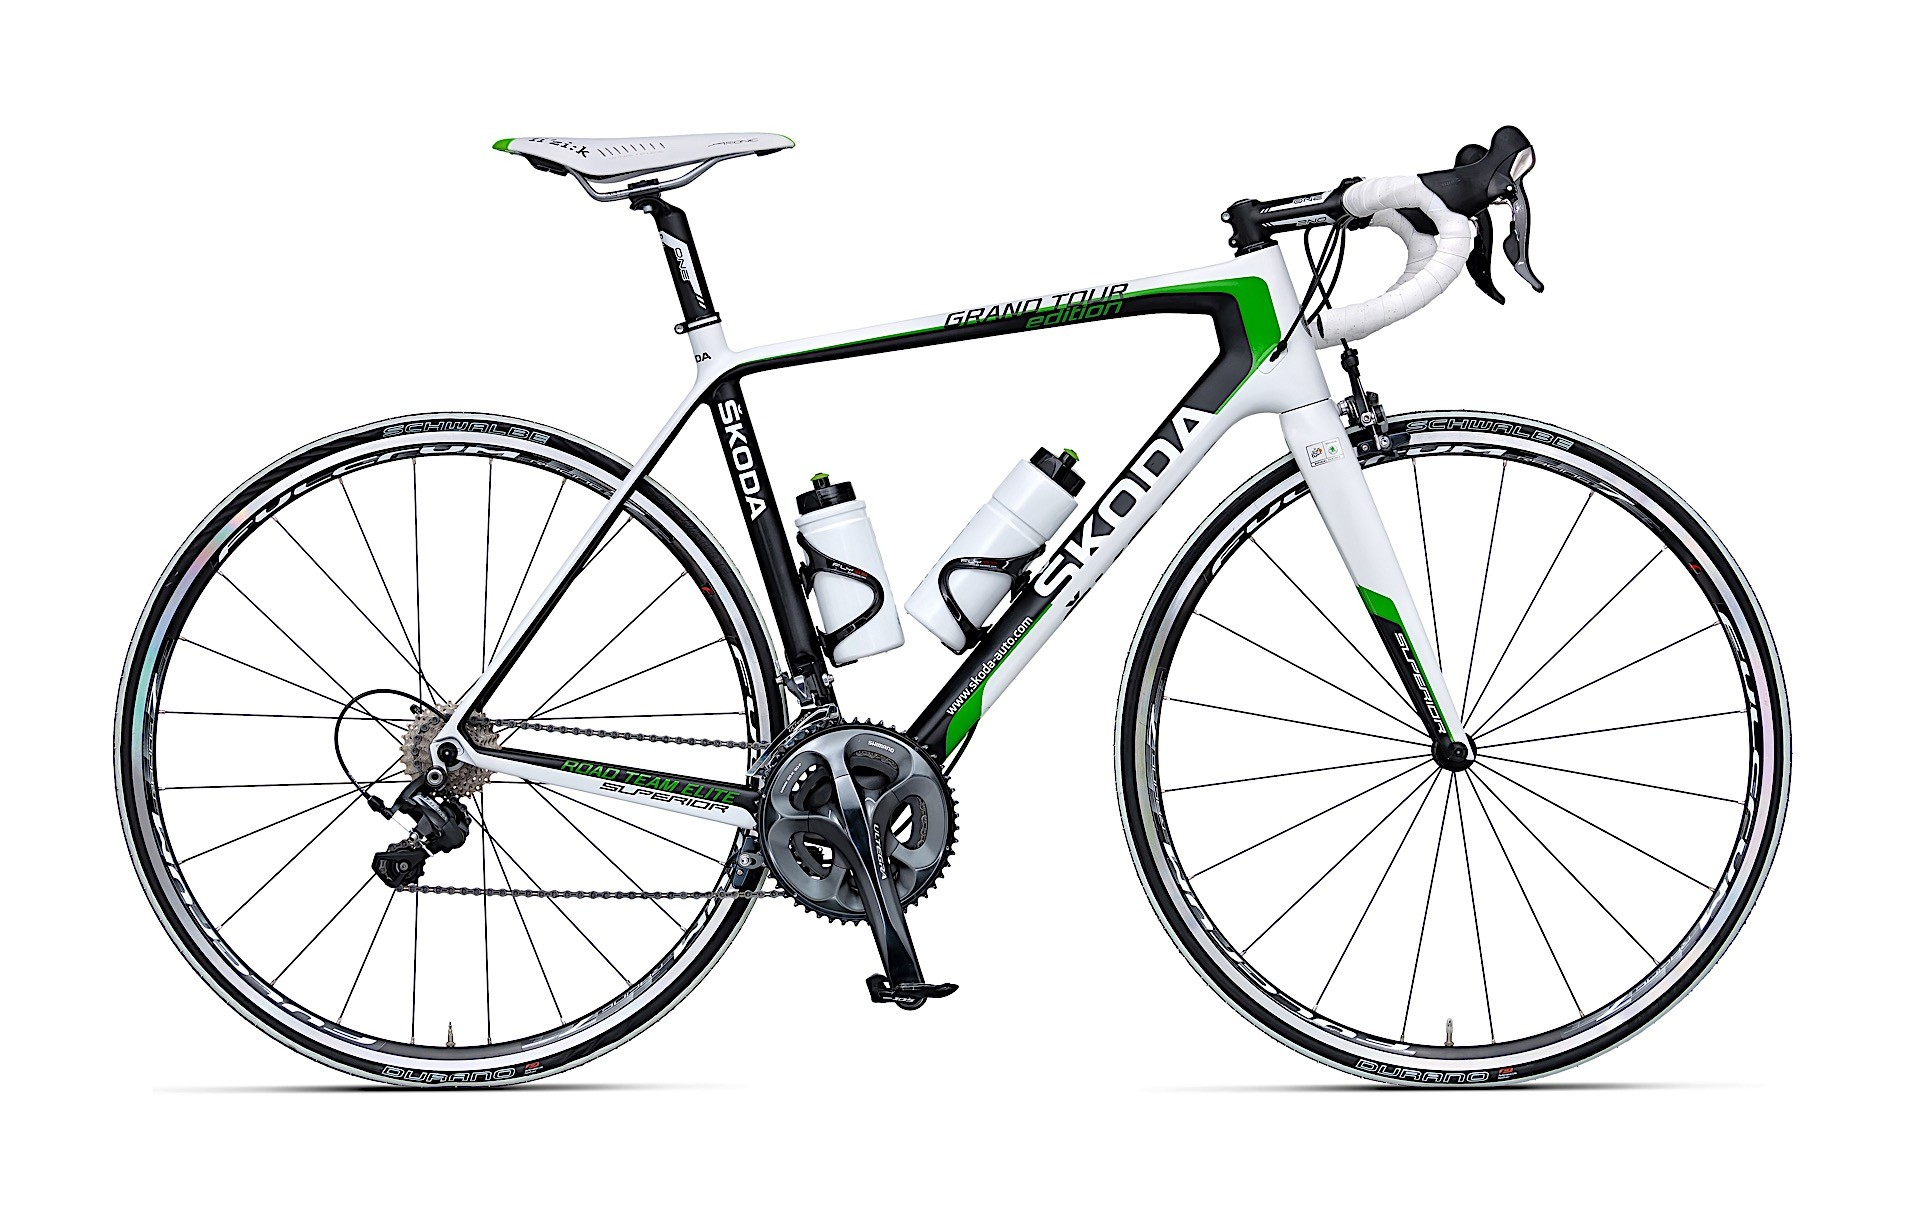 Skoda Puts Aerodynamics Lab To Use For Olympic Cyclist